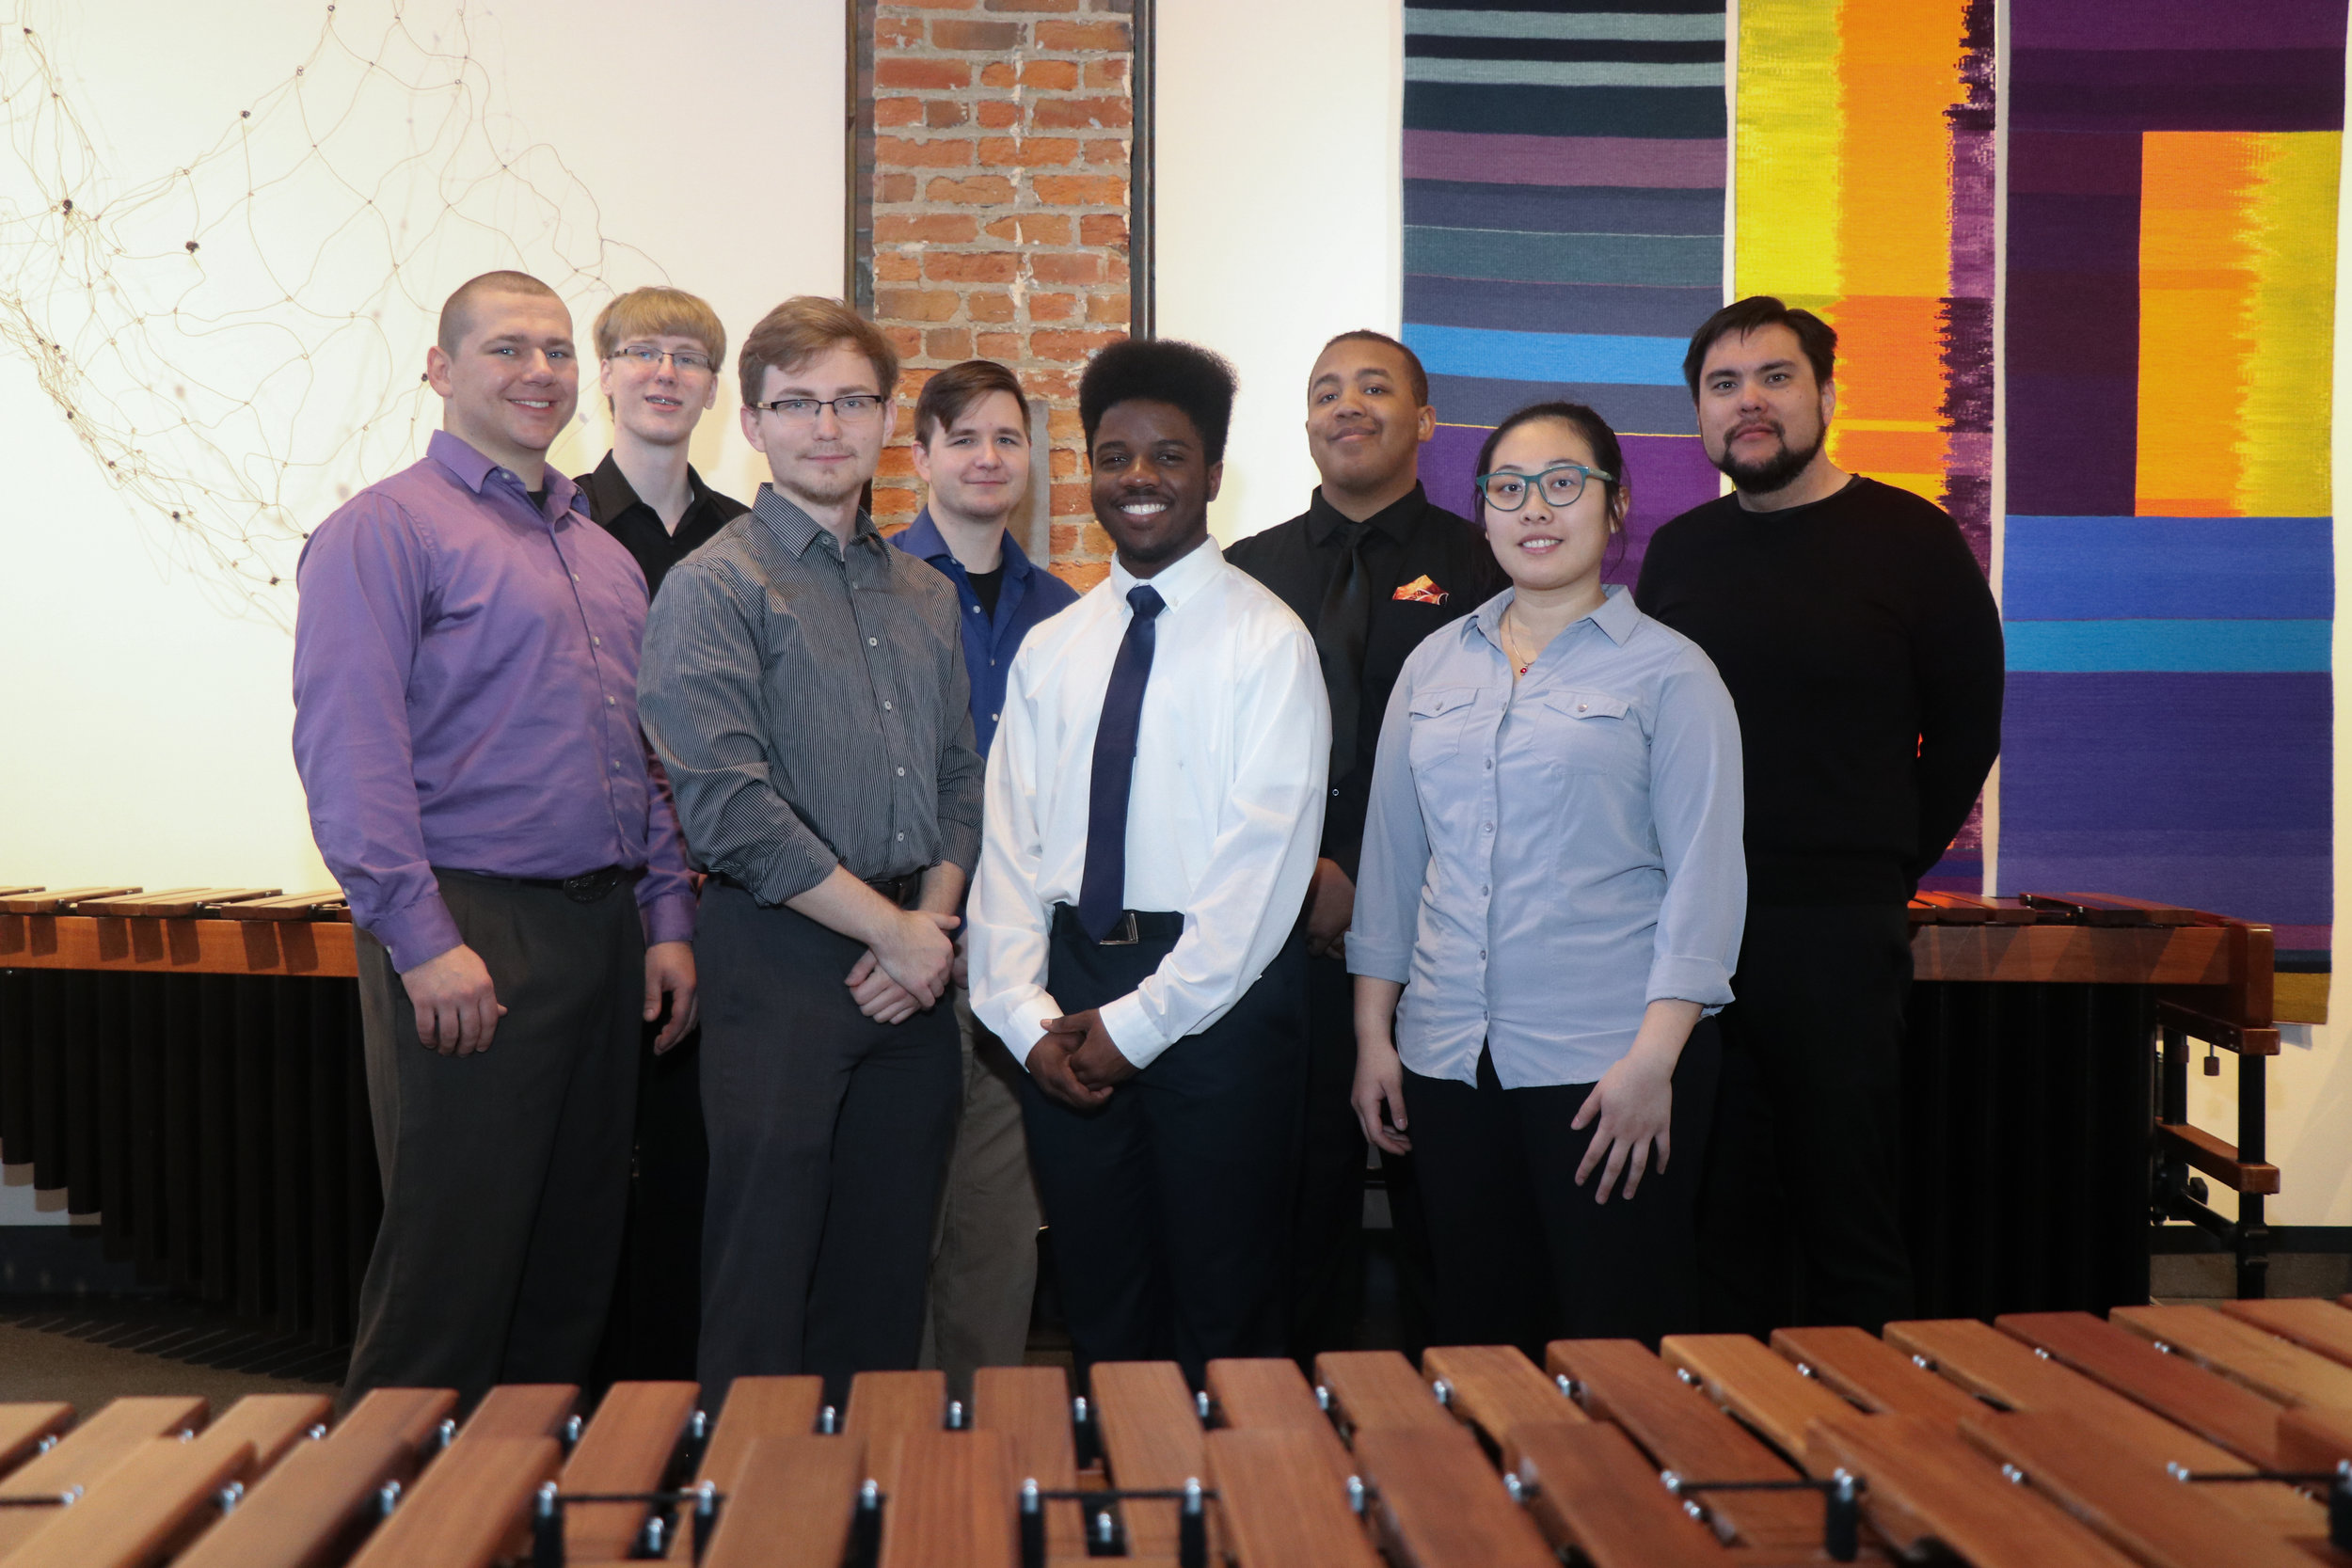 Gallery 1516_UNO Percussion Ensemble 4-14-2019-4895-4_Kaplan.jpg